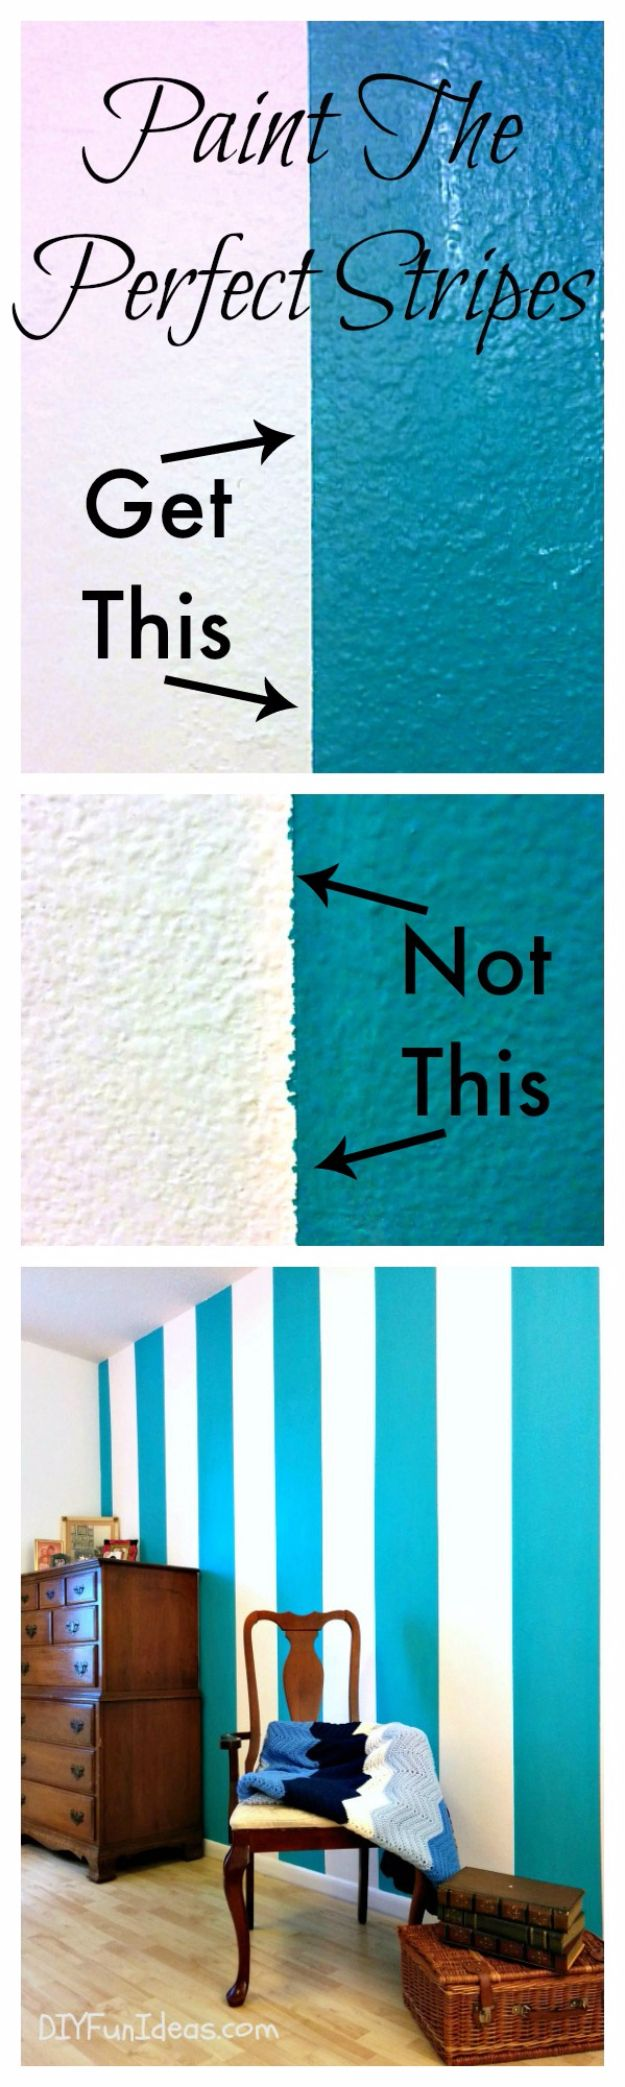 Best Ideas About Paint Techniques Wall On Pinterest Faux - Diy bedroom painting ideas